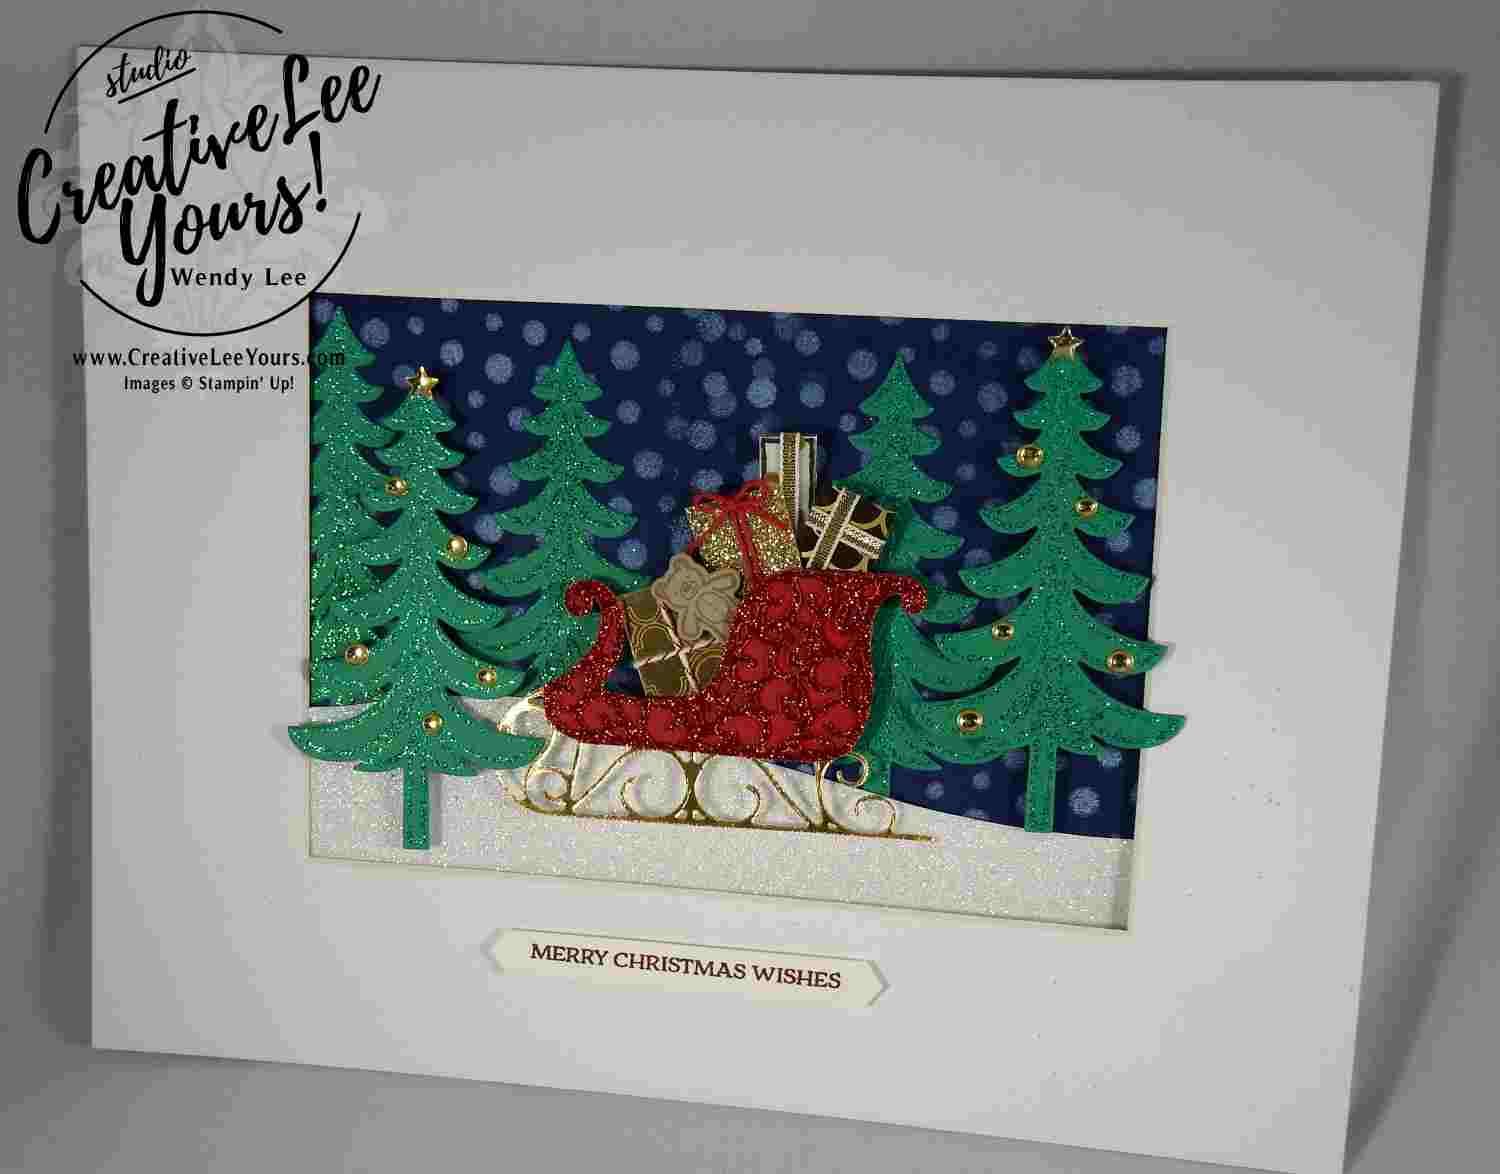 santas sleigh by wendy lee, stampin up, home decor, class, #creativeleeyours, santas sleigh stamp set, santas sleigh framelits